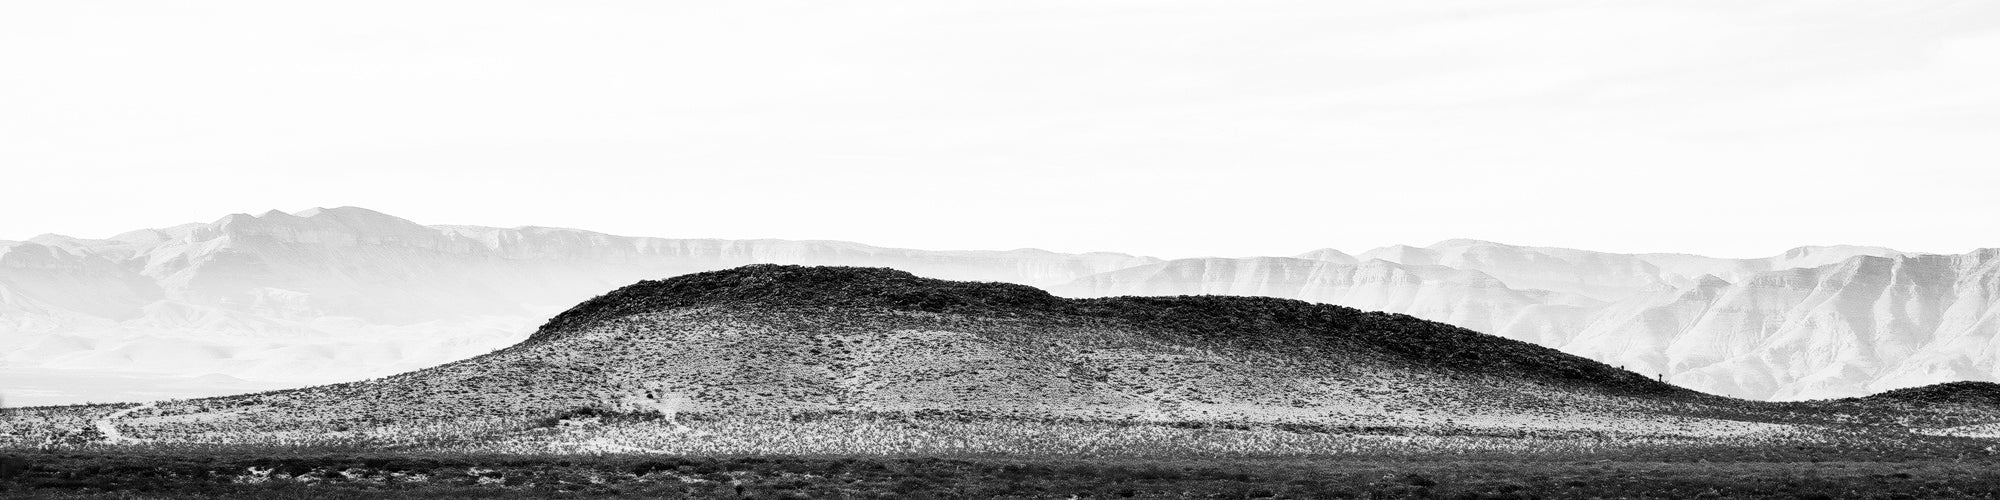 Desert Mountain Panorama: Black and White Landscape Photograph by Keith Dotson.